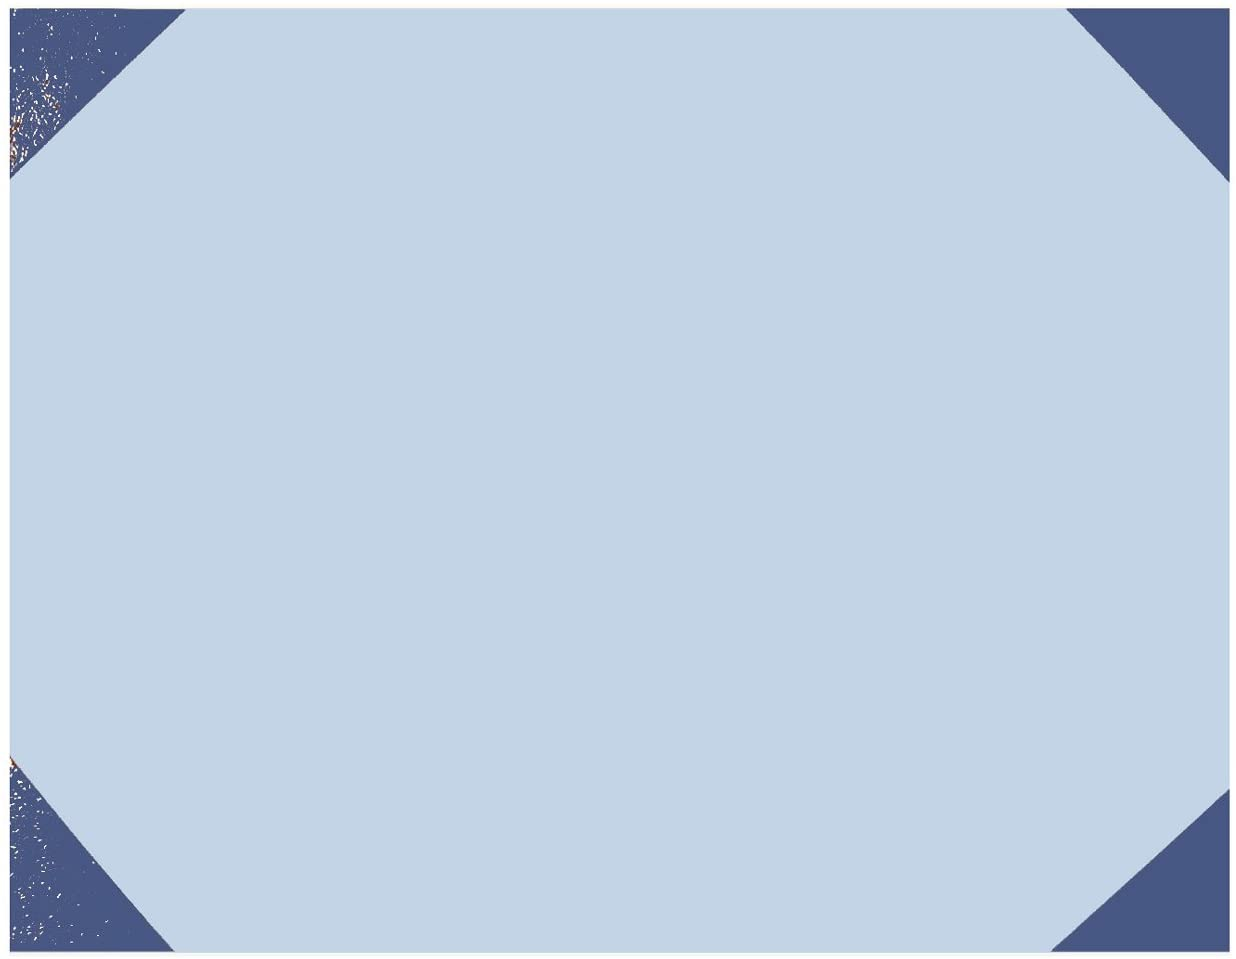 22 x 17-Inch Fits Any 22 x 17 Refillable Desk Pad 25 Sheets House of Doolittle EcoTones Blue Refill for HOD440 Recycled HOD445